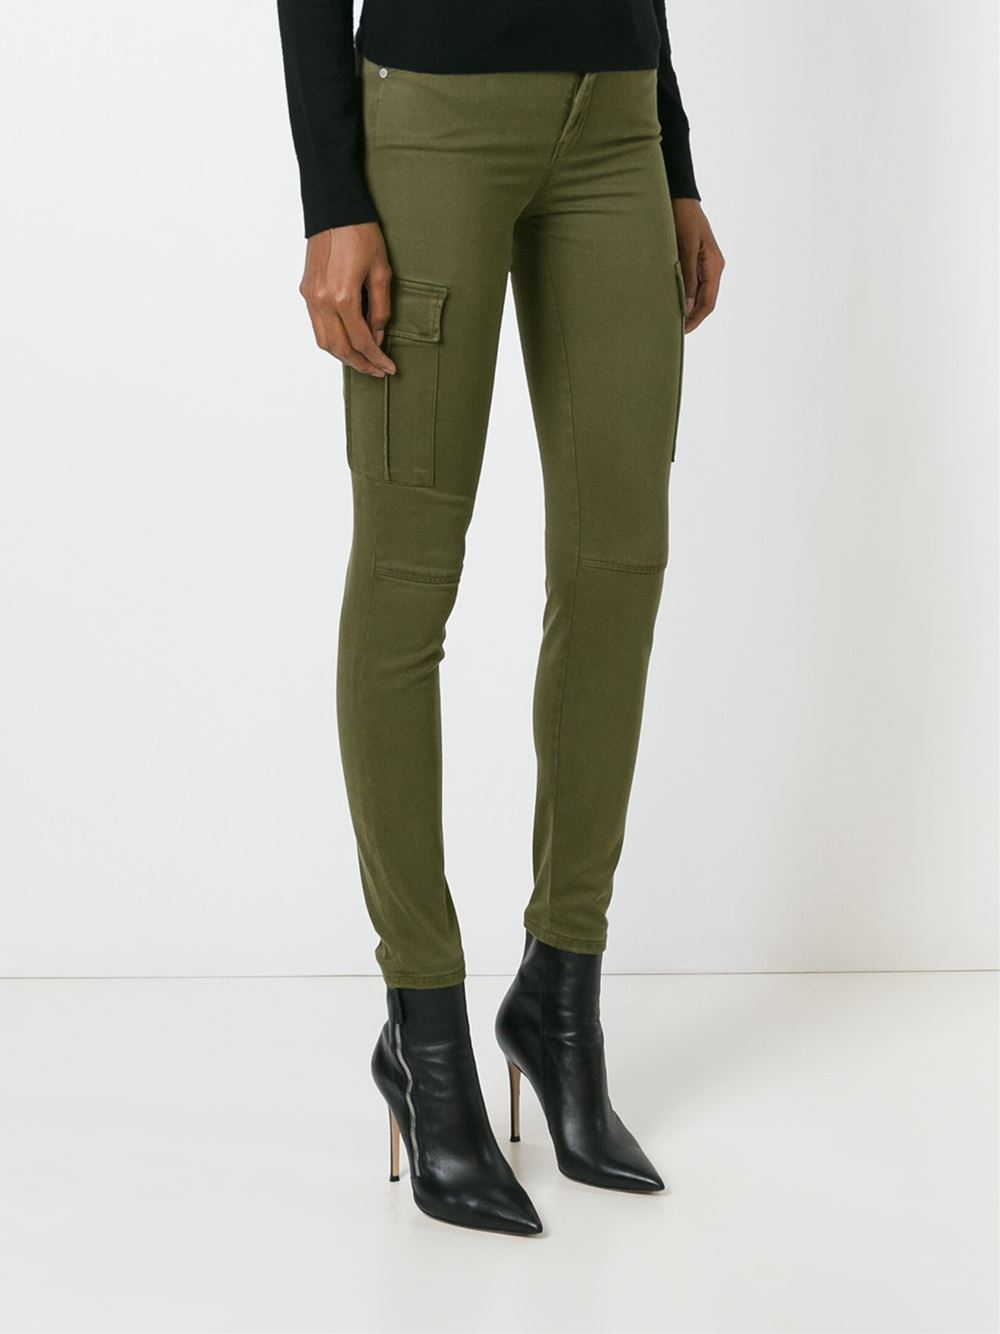 Lyst 7 For All Mankind Skinny Cargo Jeans In Green